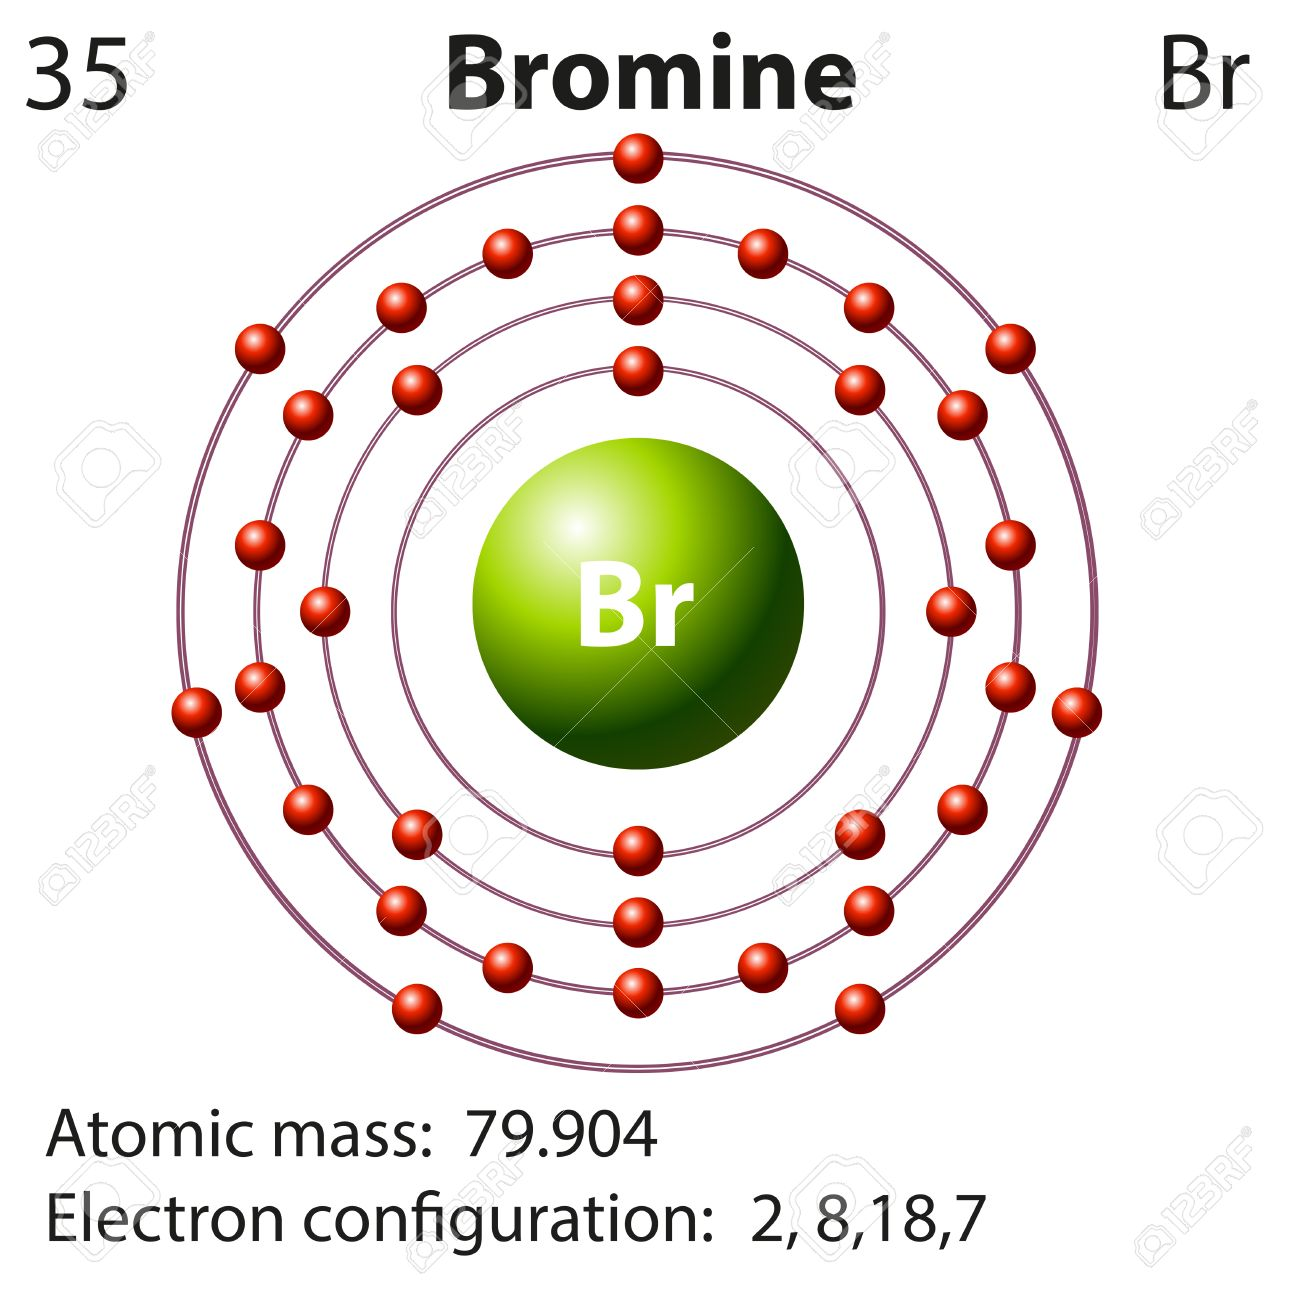 300 Bromine Cliparts Stock Vector And Royalty Free Bromine